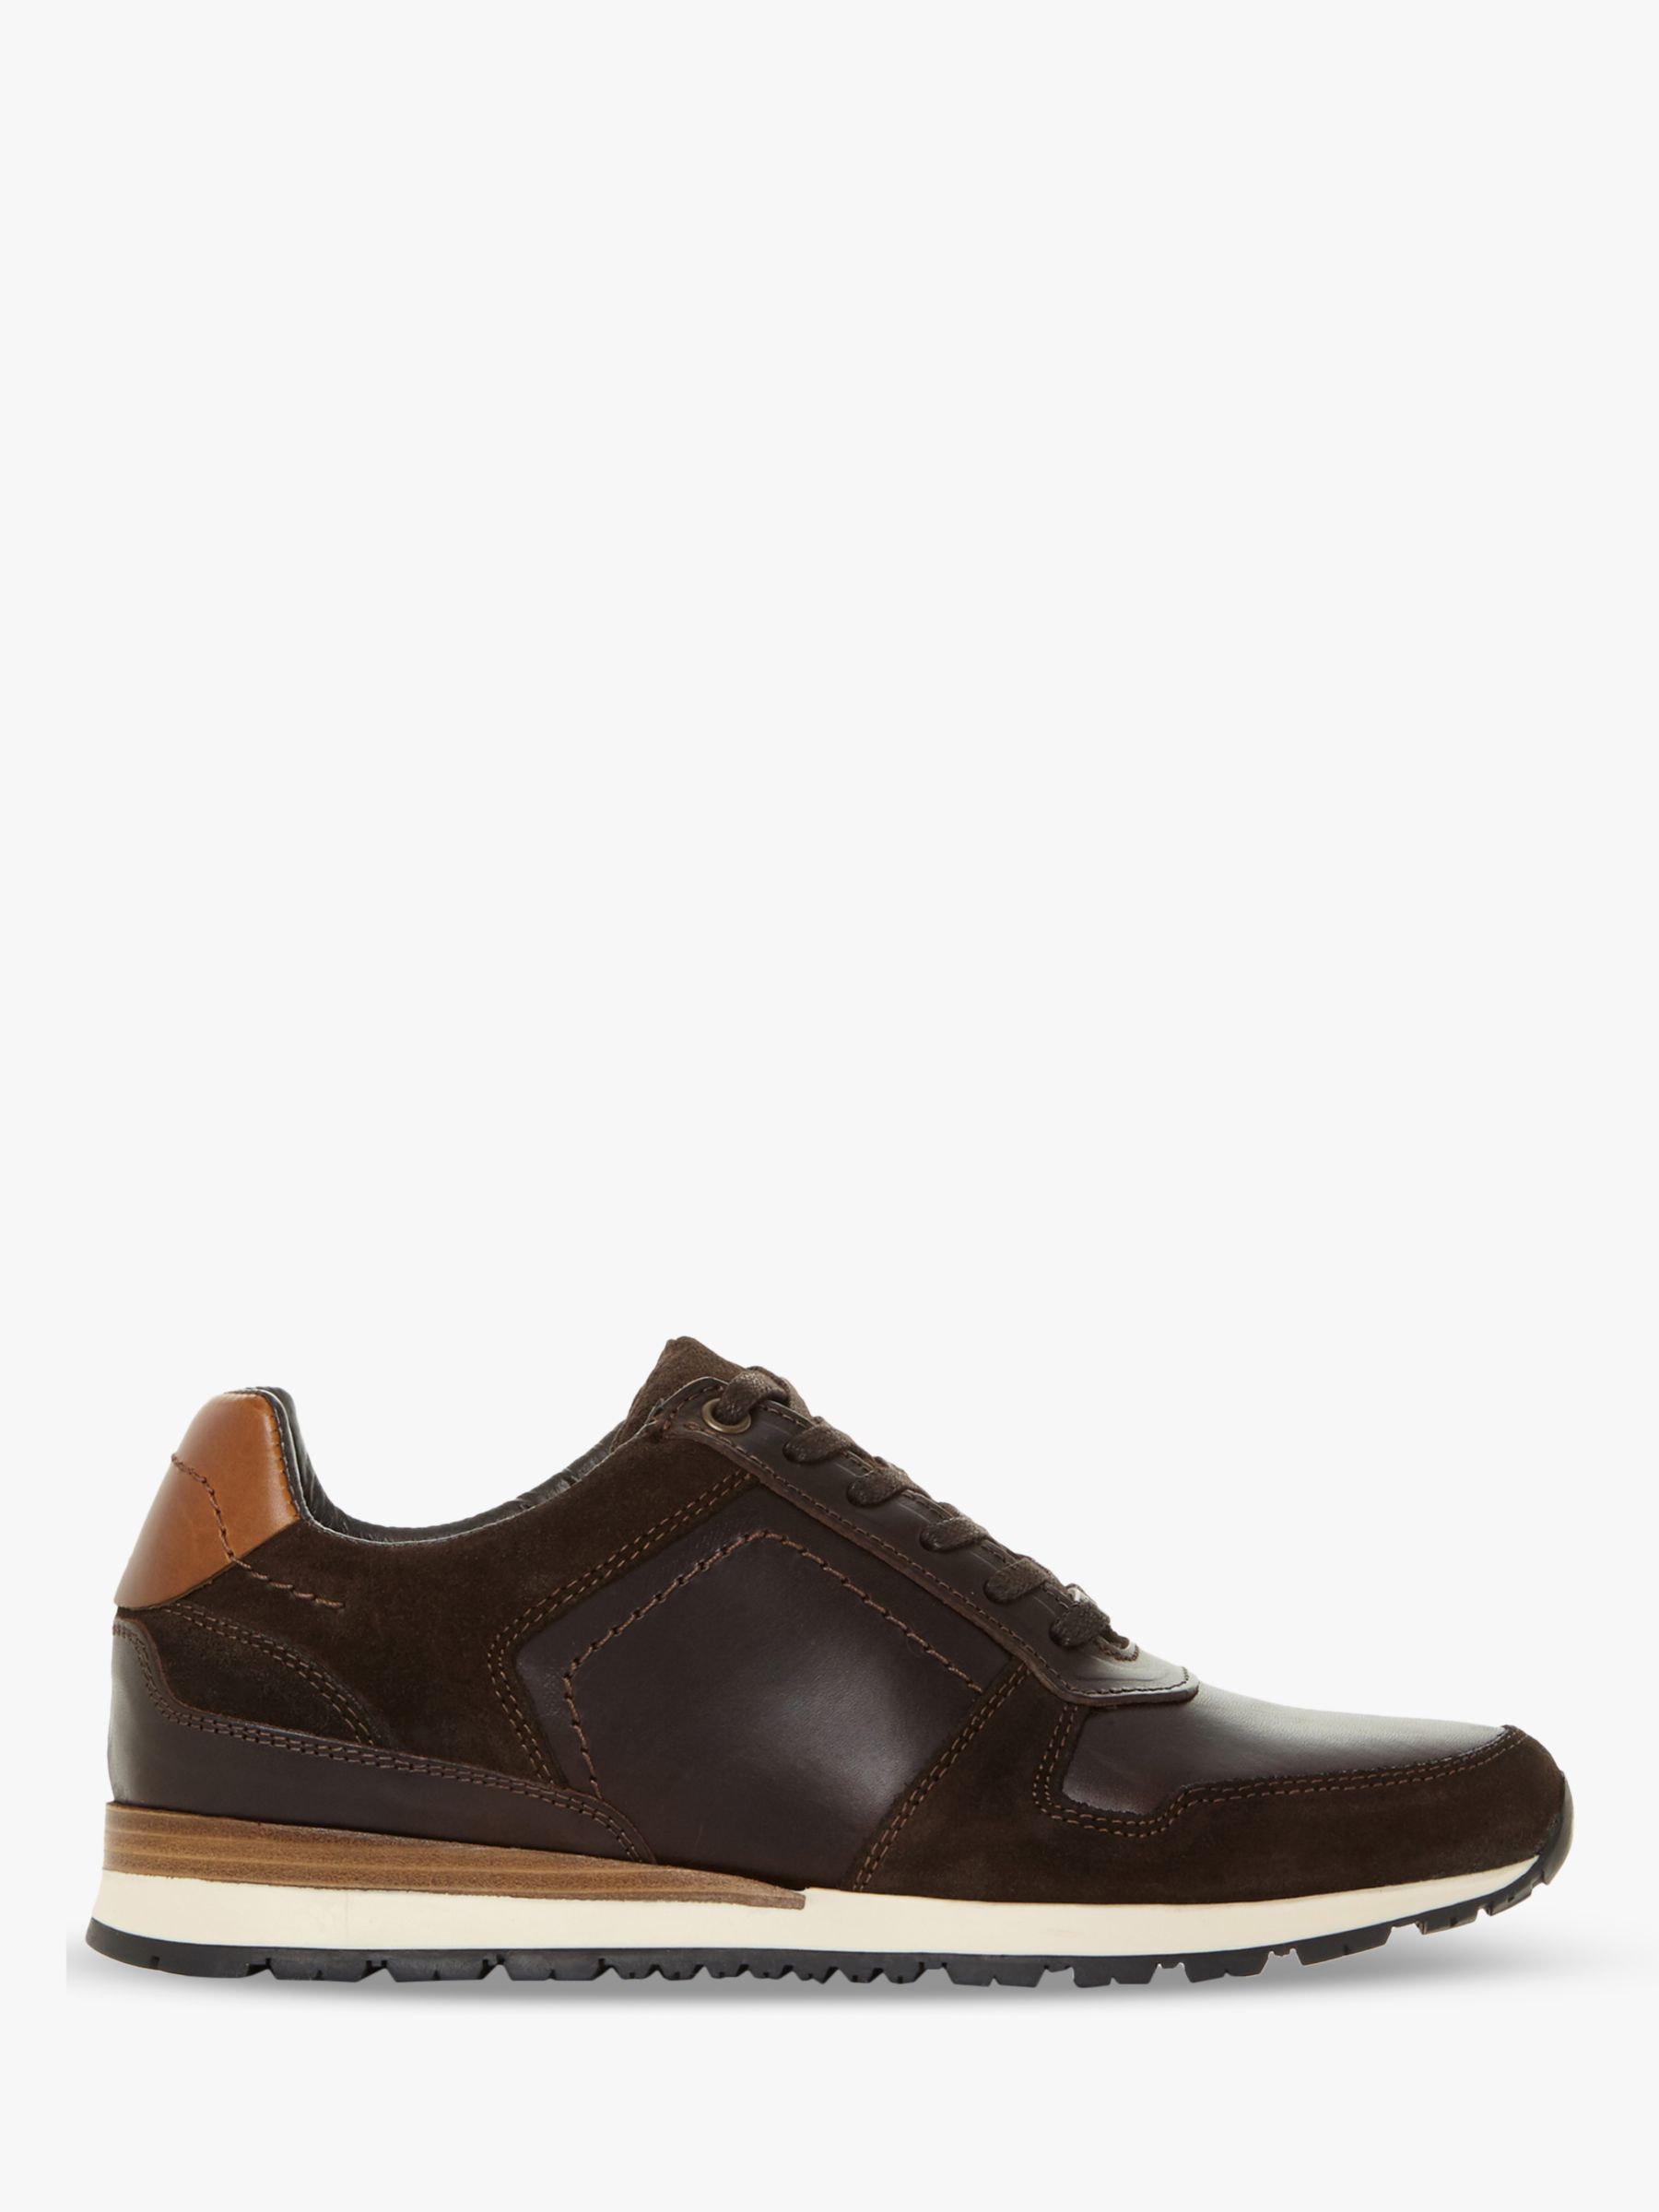 Dune Dune Tenor Leather Trainers, Brown